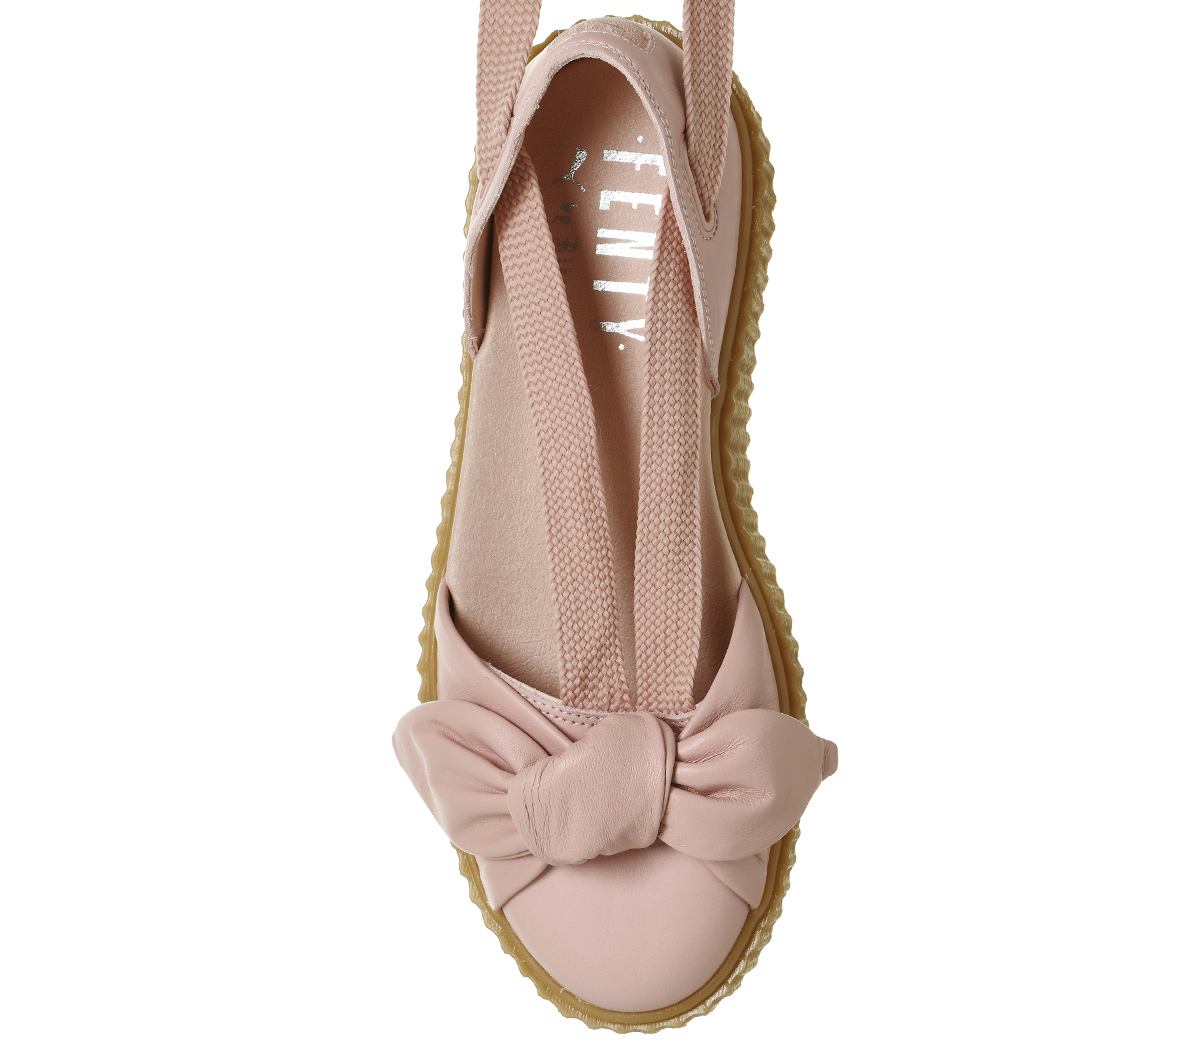 Womens-Puma-Creeper-Ballet-Lace-Pink-Fenty-Sandals thumbnail 10